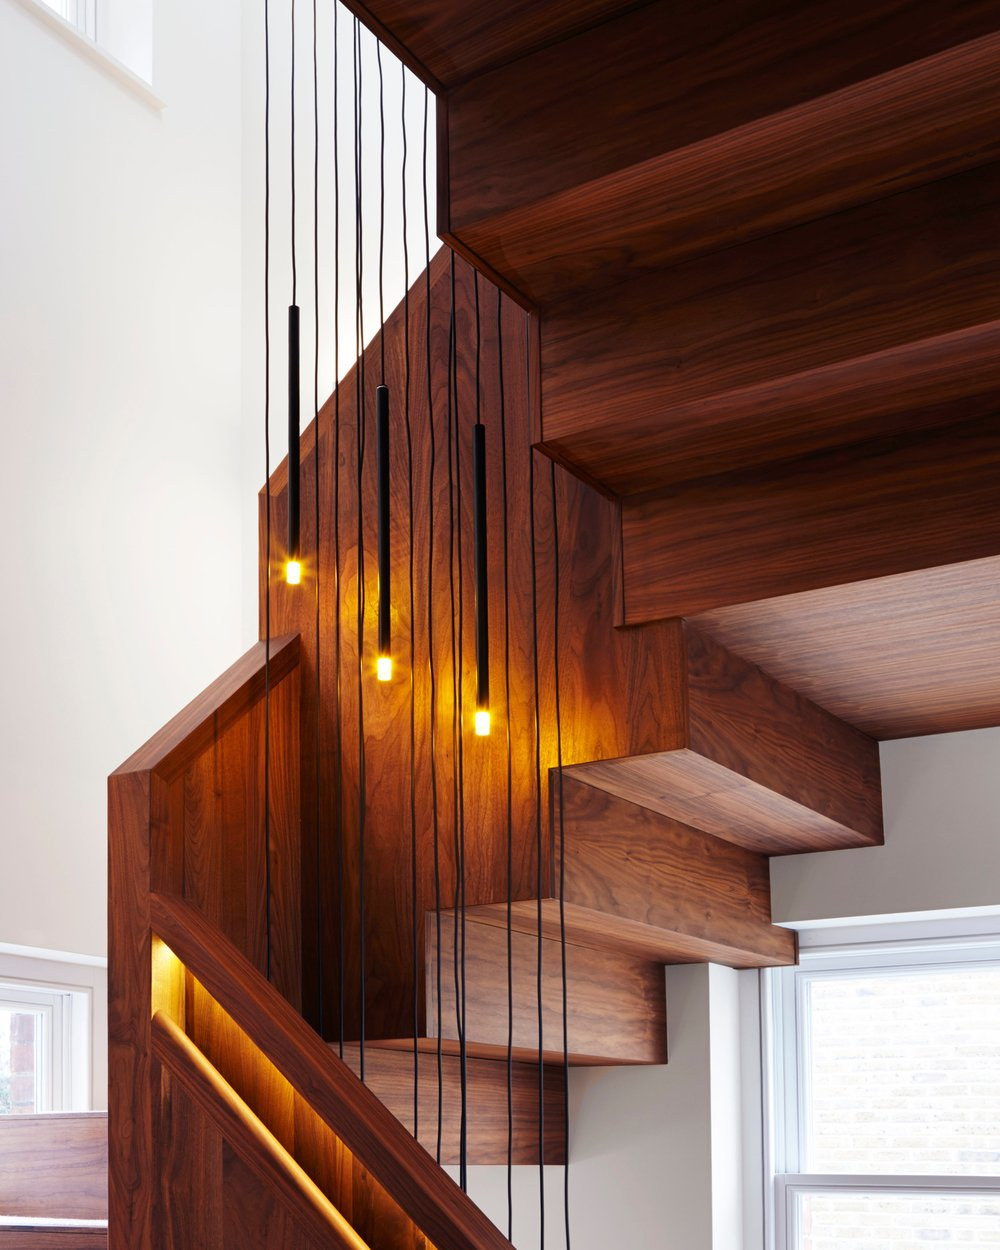 The Company. - We design, manufacture and install beautiful, bespoke joinery & interiors for the most discerning clients. Our love for creativity, design and true craftsmanship is instilled in everything we do; from developing an initial concept, to hand-finishing a dovetail joint. We see every new commission as a unique opportunity to create something entirely new, offering a truly bespoke, concept-to-completion service, that is tailored to reflect the personality, lifestyle and unique characteristics of our clients.